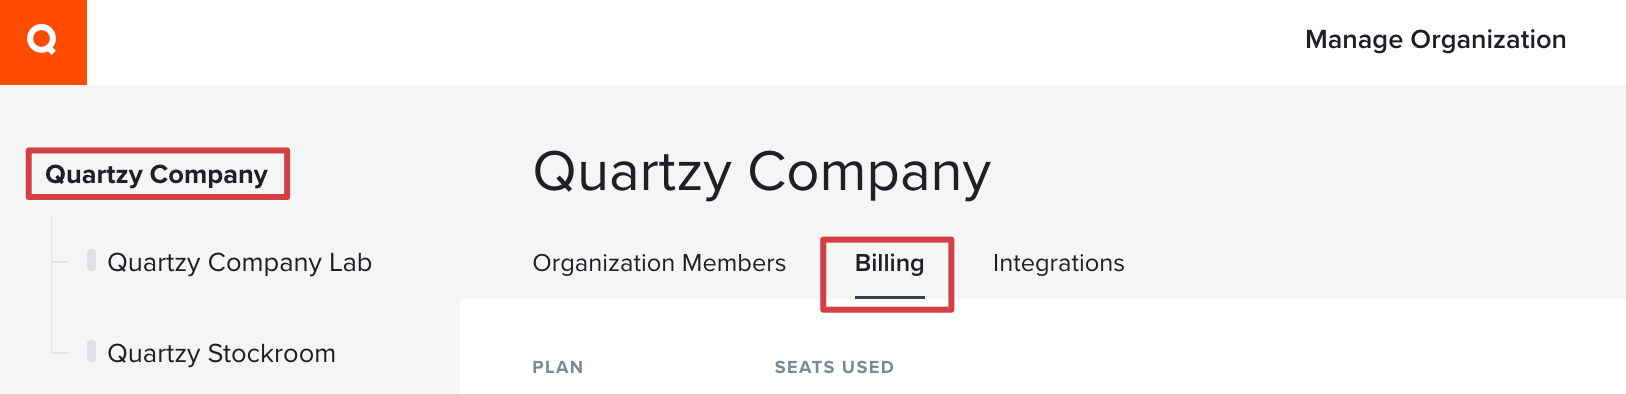 manage_org_billing.png